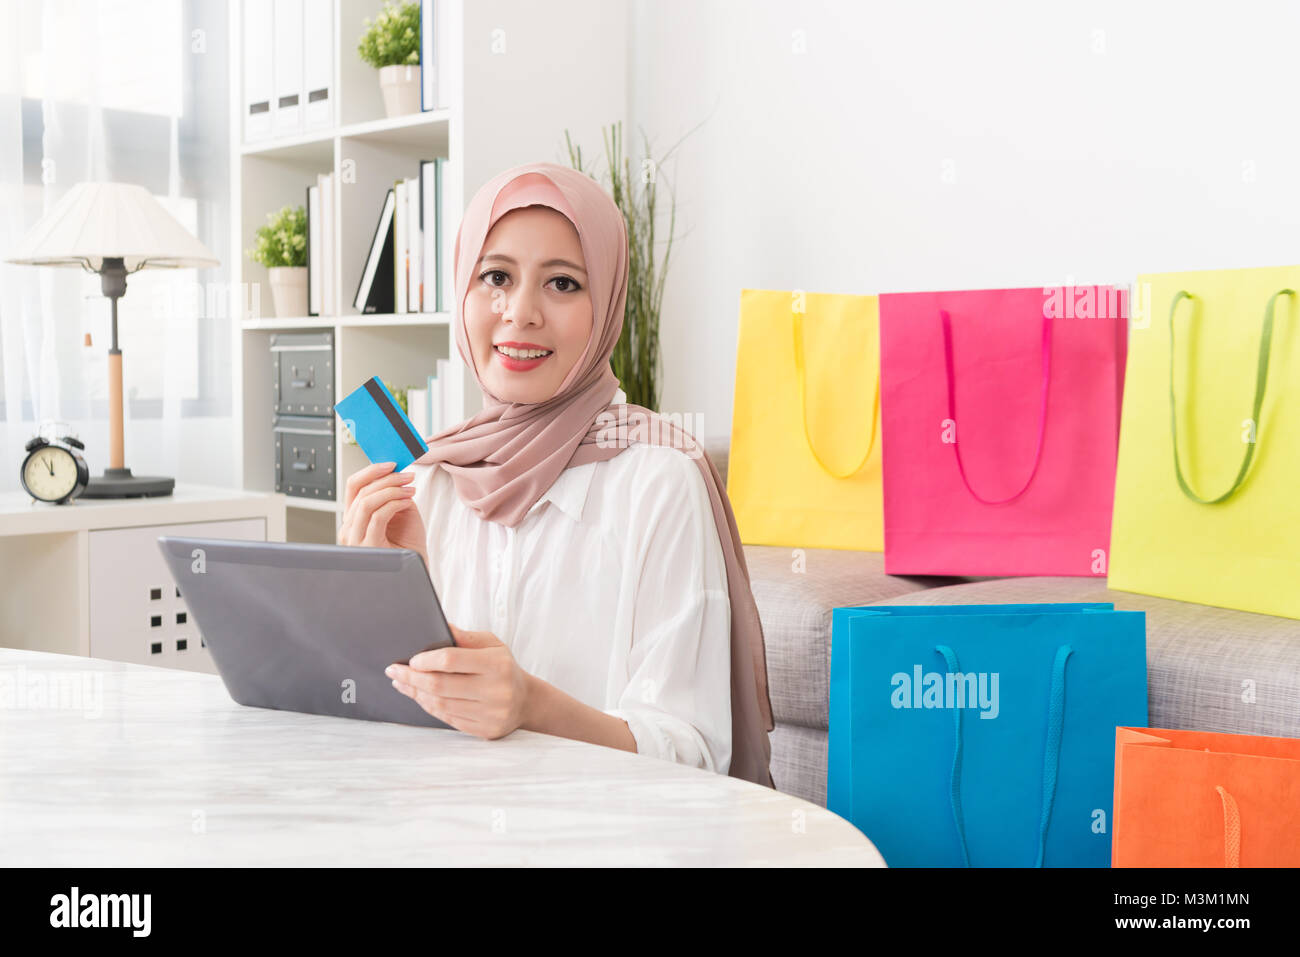 minnesota lake muslim girl personals Meet muslim singles in lake of the woods county interested in meeting new people to date on zoosk over 30 million single people are using zoosk to find people to date.